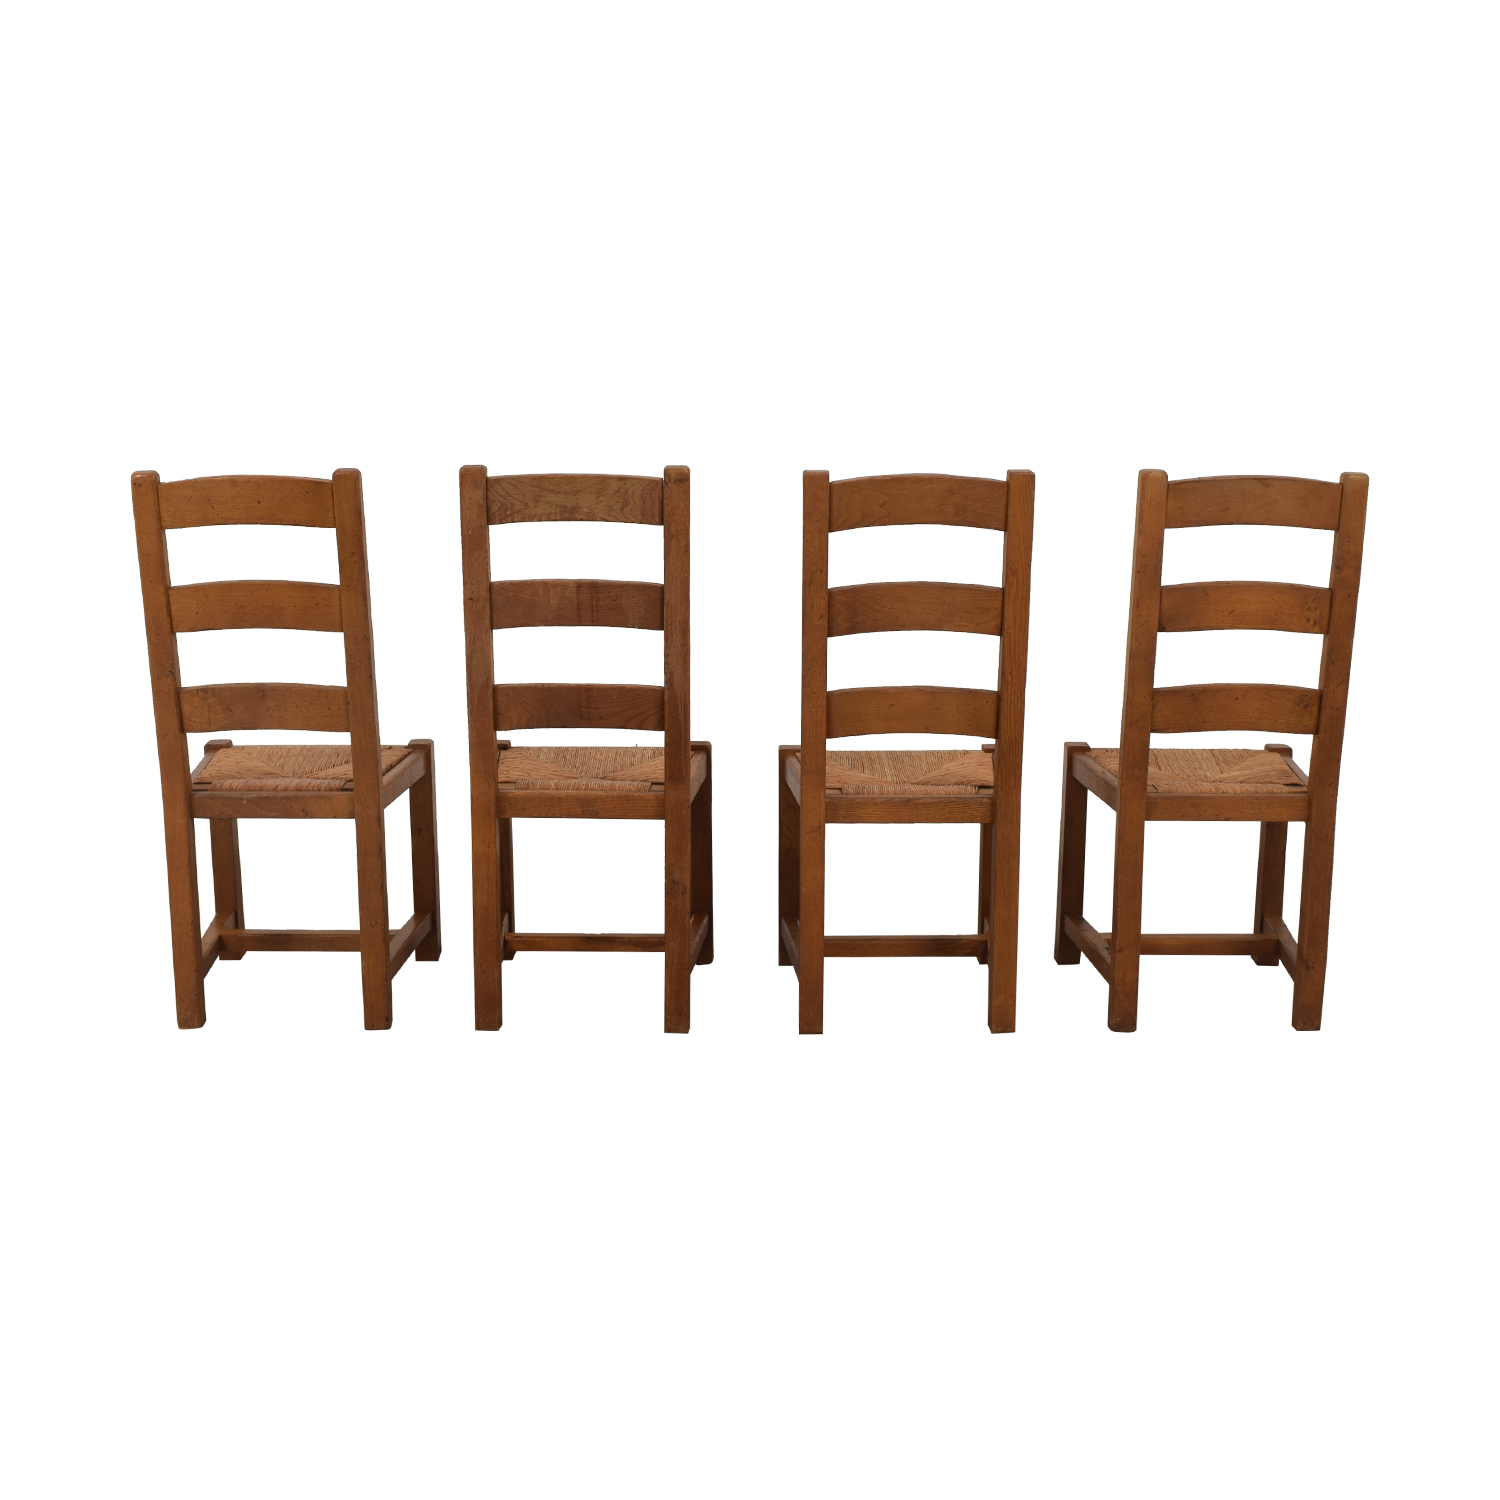 Crate & Barrel French Farm Dining Chairs / Dining Chairs